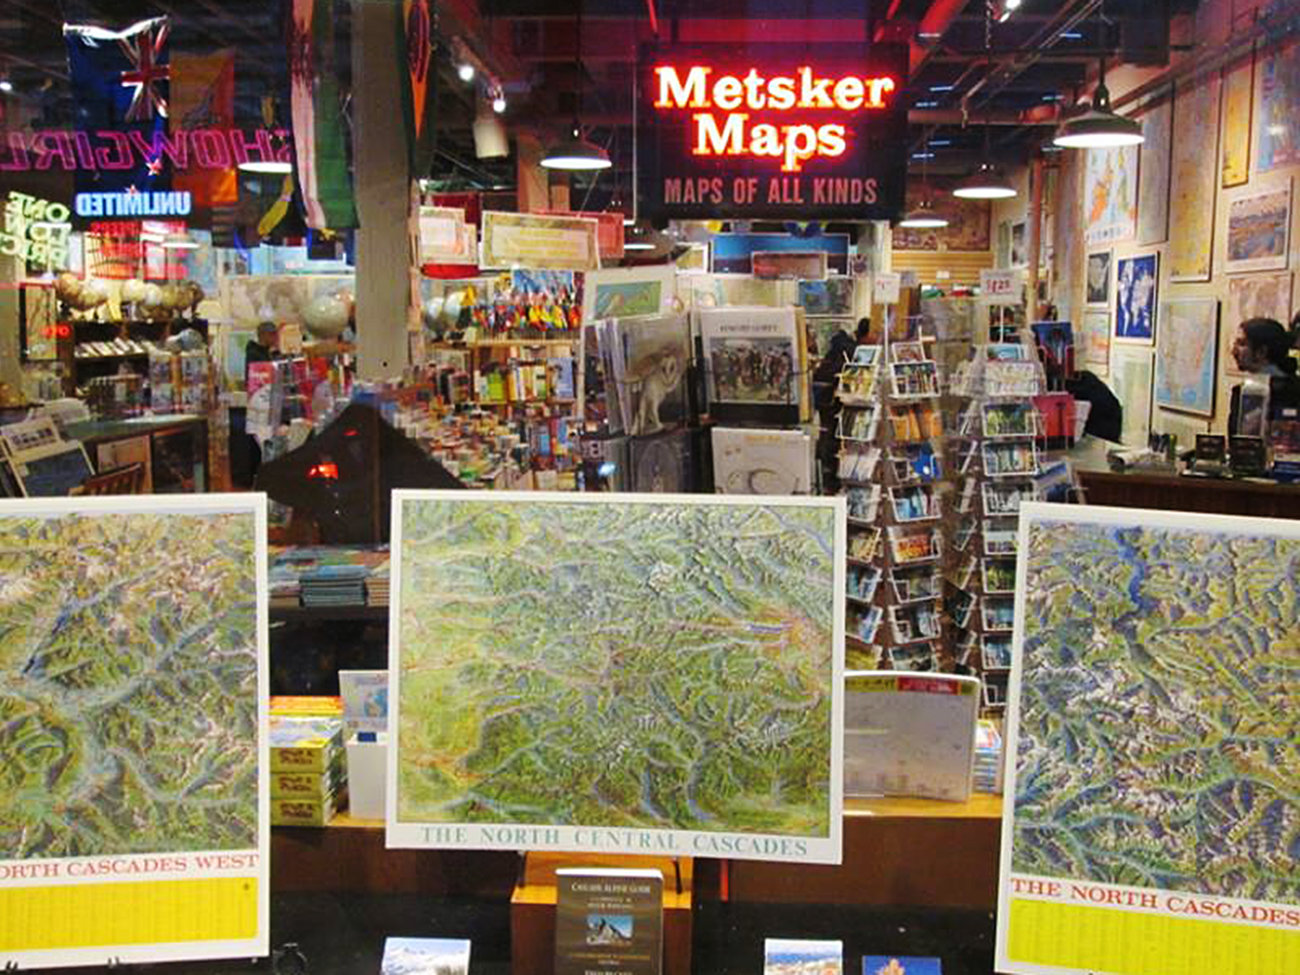 Metsker Maps Store in Seattle